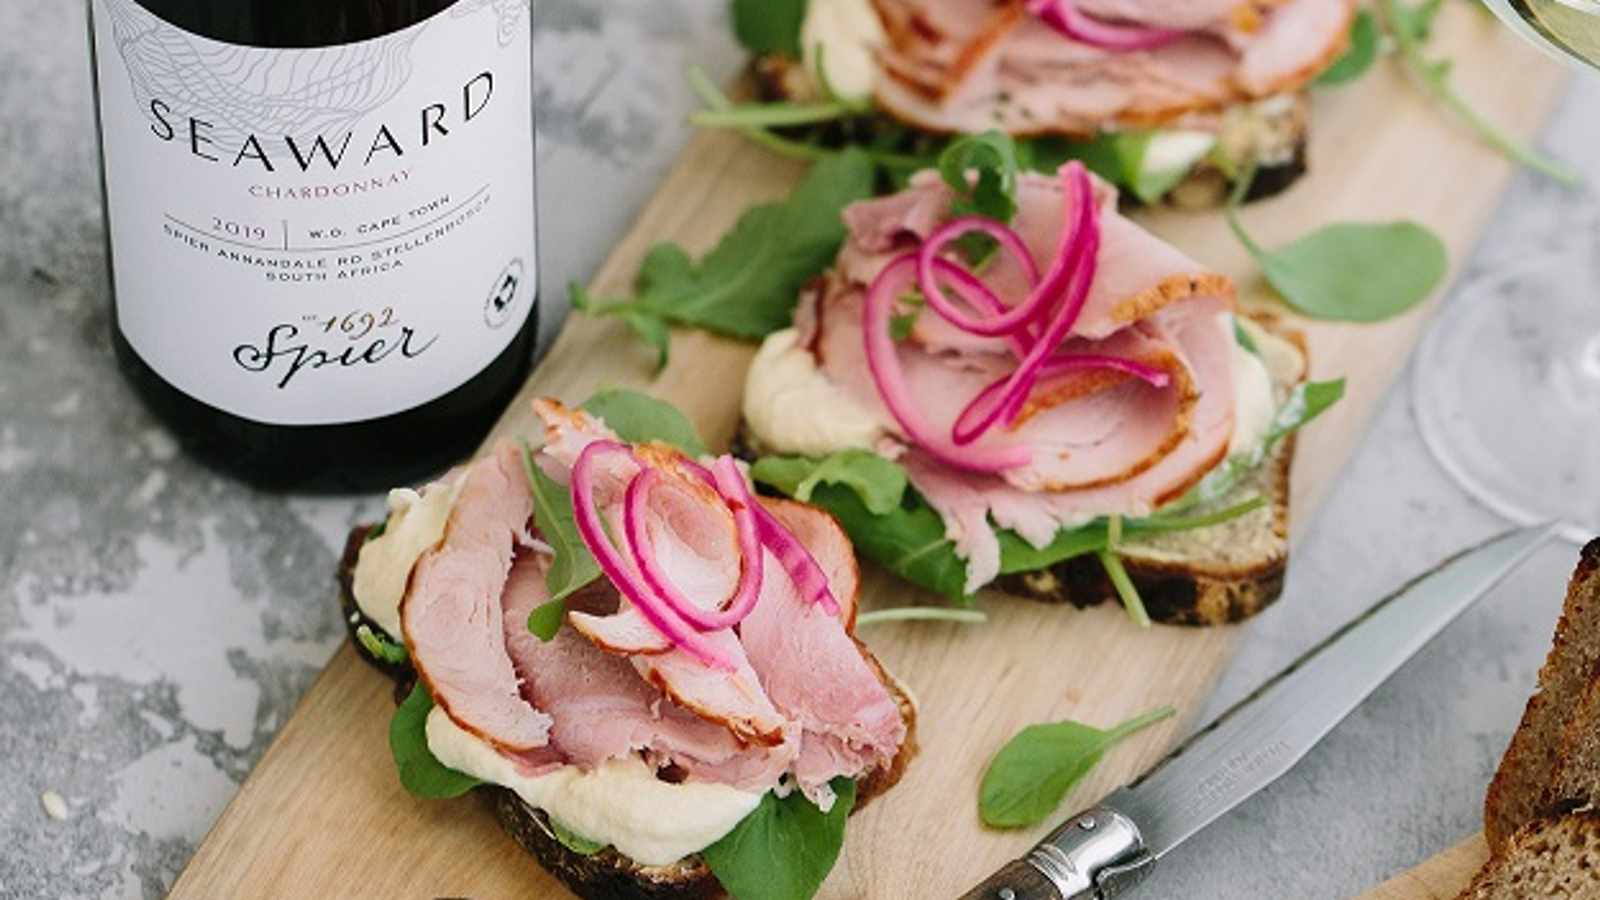 Open Sandwiches and Chardonnay